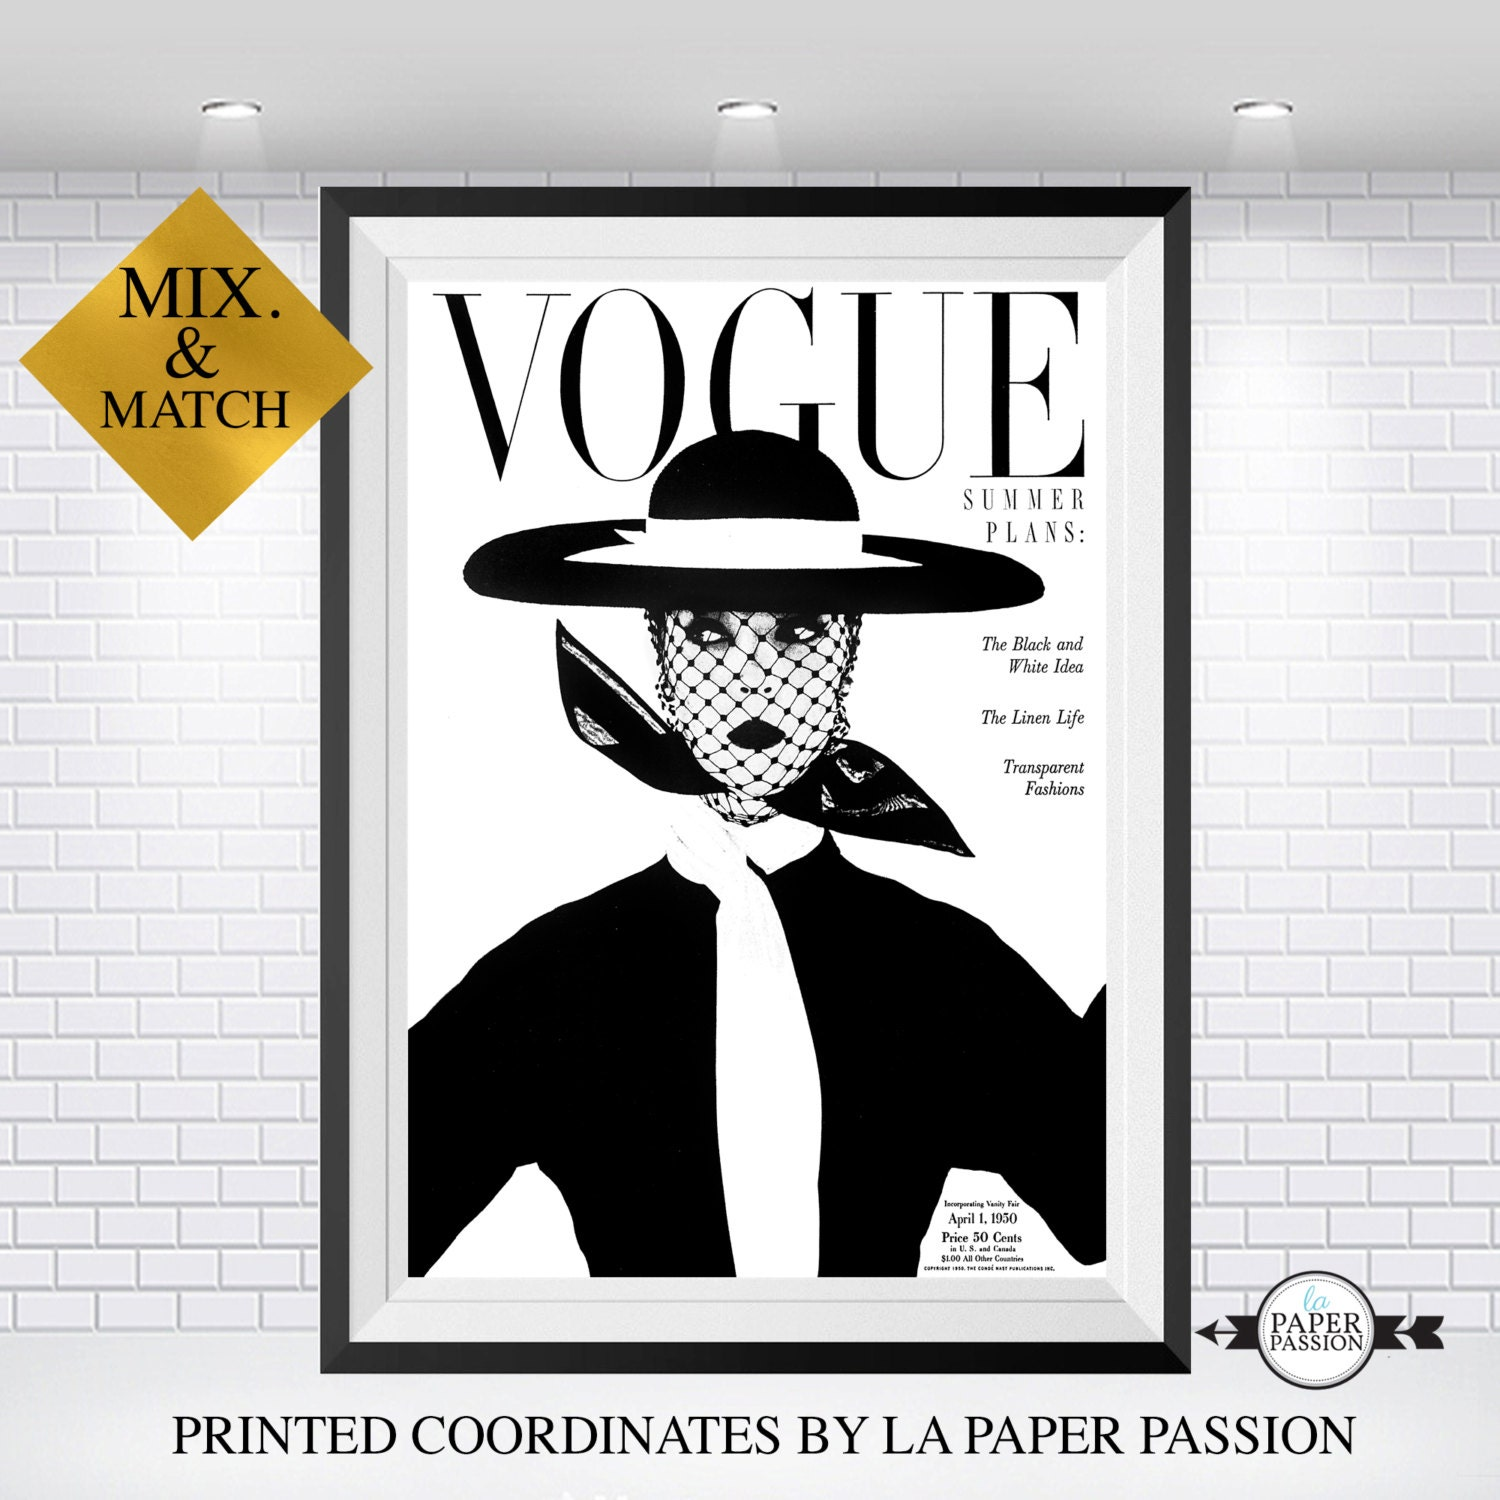 Vogue Vogue Poster Vogue Print Vogue Home Decor Vogue Wall: home decor wall decor australia